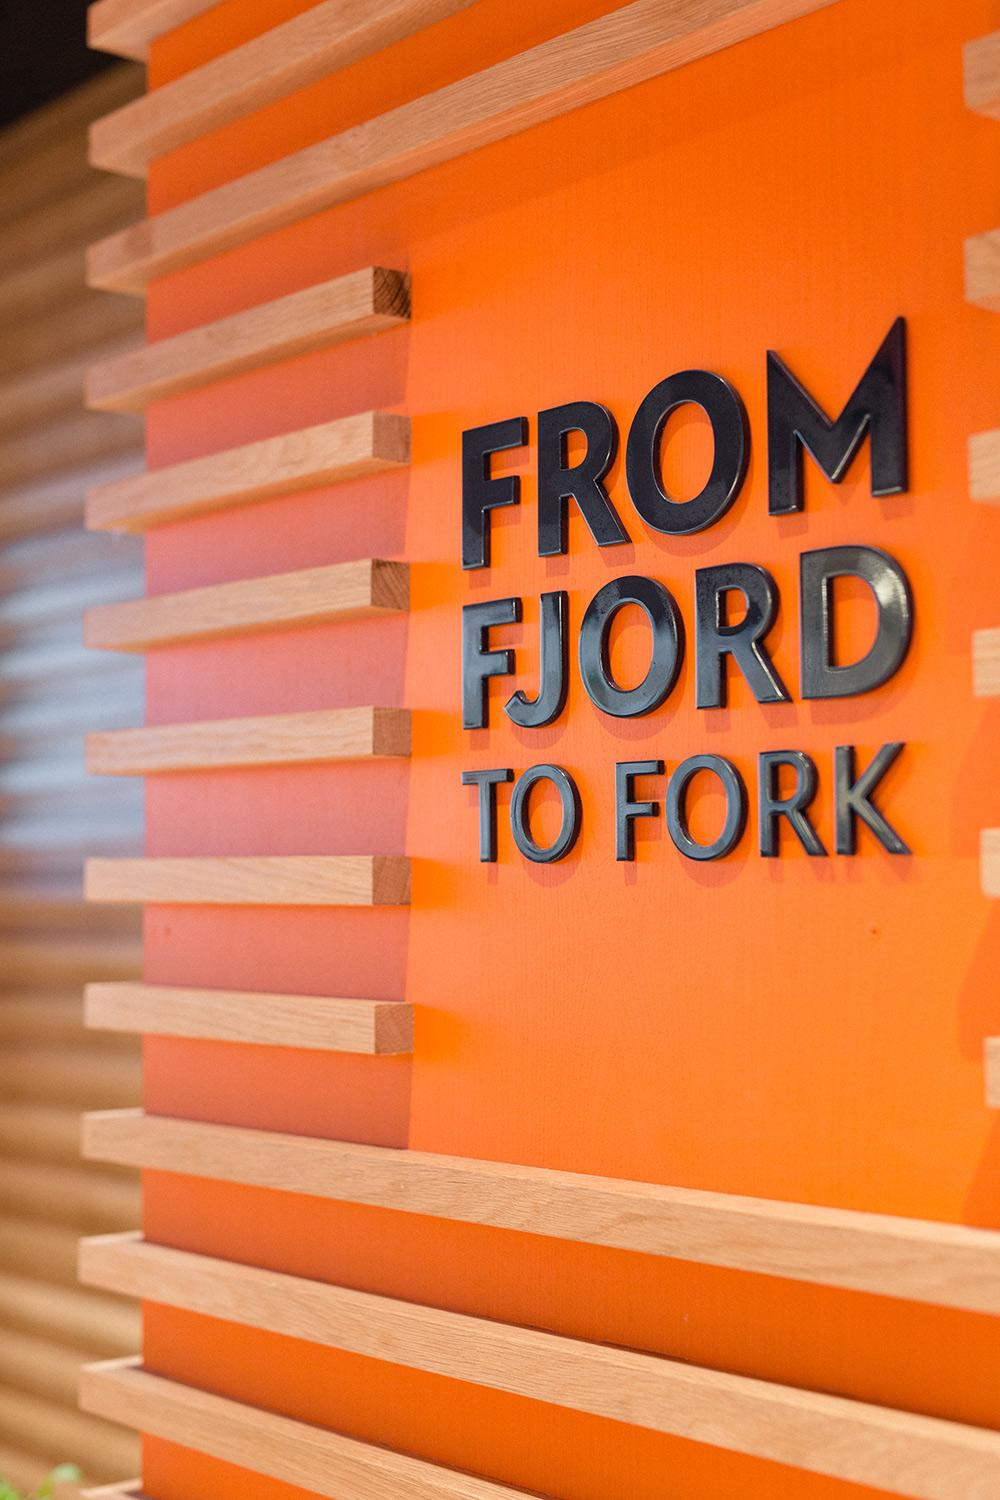 From fjord to fork – the tagline for Pink Fish